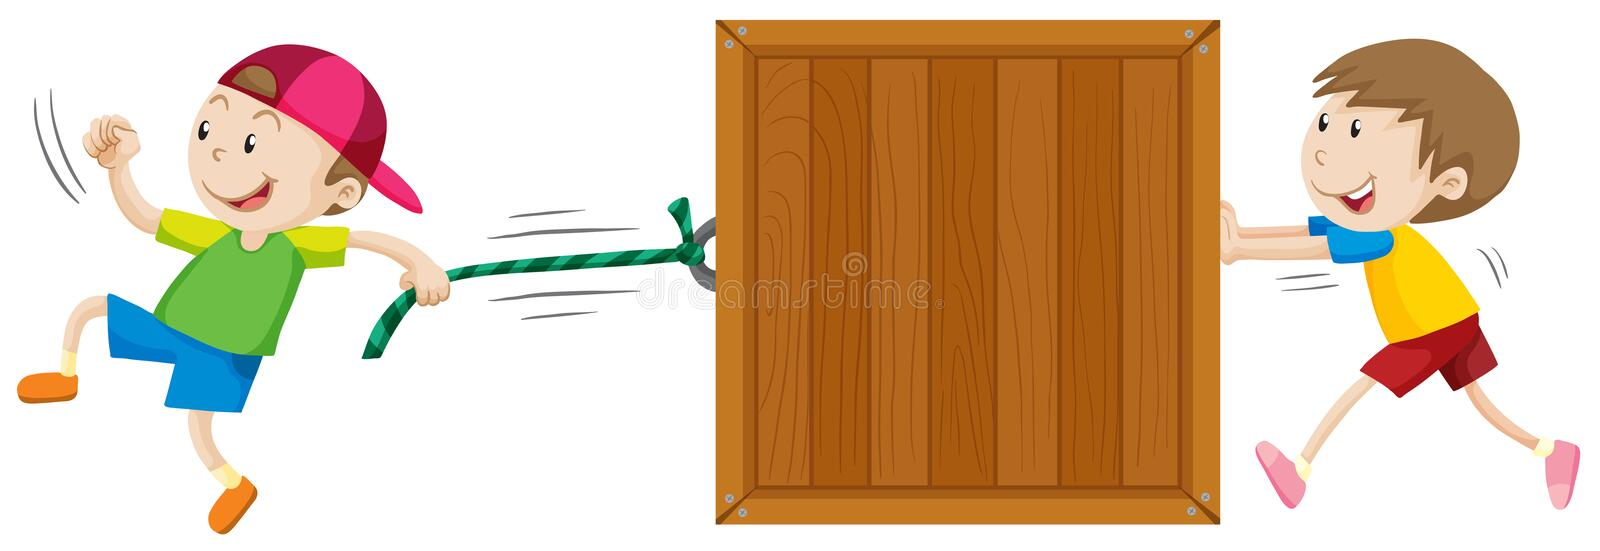 Two boys moving wooden box vector illustration